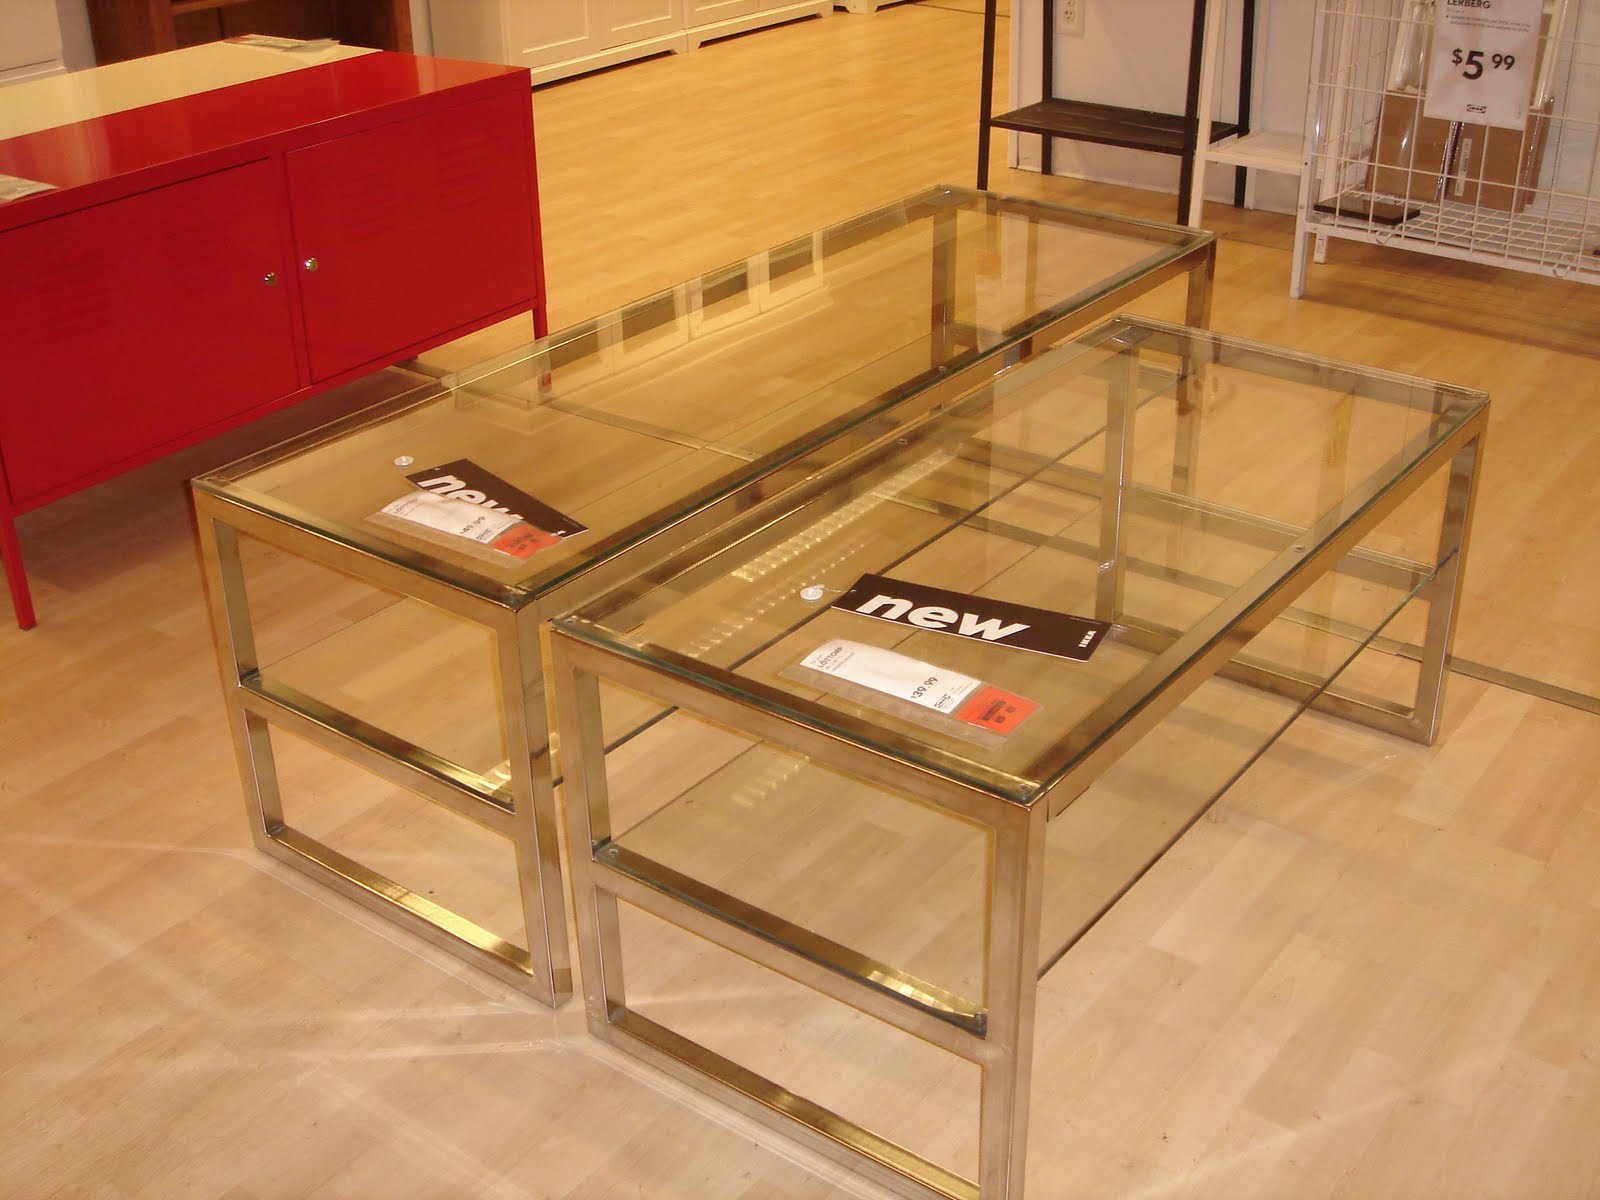 Glass Coffee Table Ikea Is This Lovely Recycled Wood Iron And Pine Shape Ensures That This Piece Will Make A Statement (Image 5 of 10)